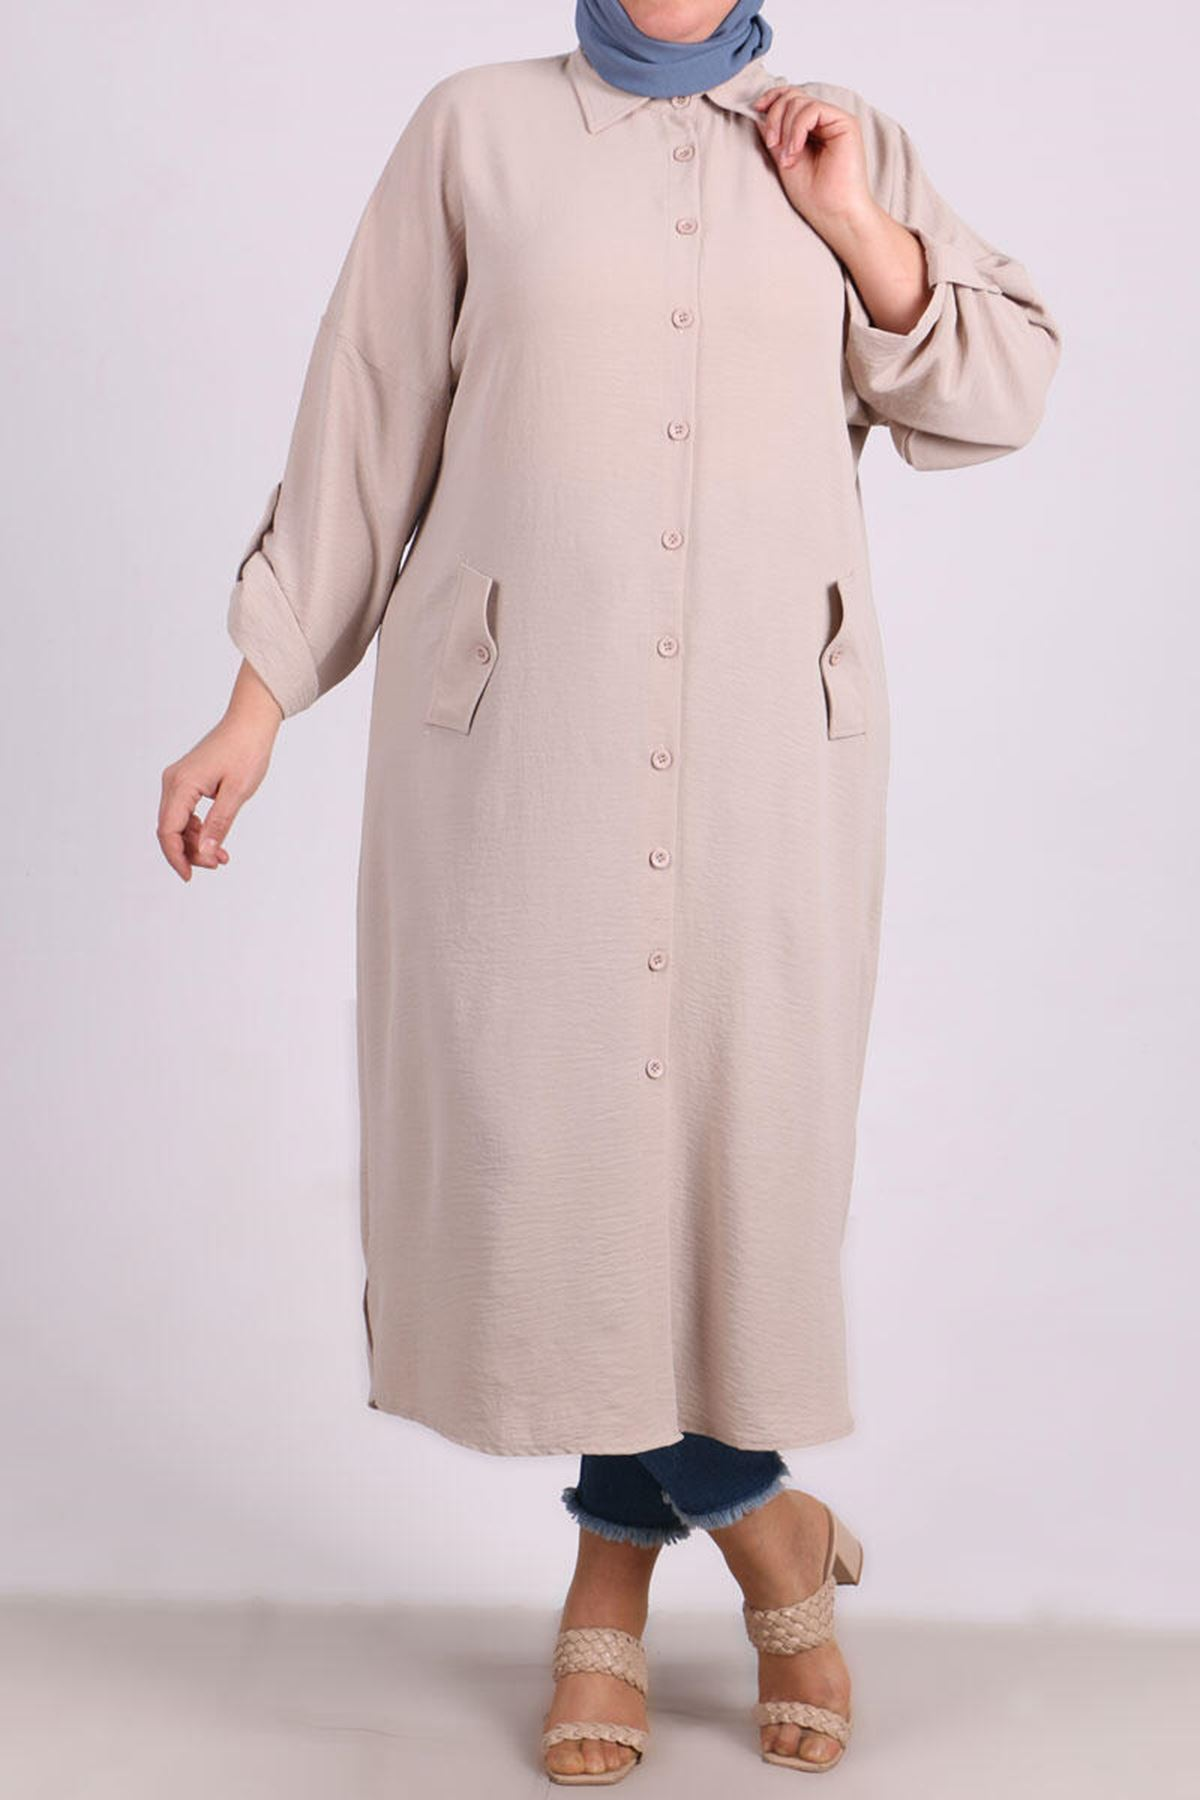 8423 Plus Size Shirt with Low Sleeve - Stone